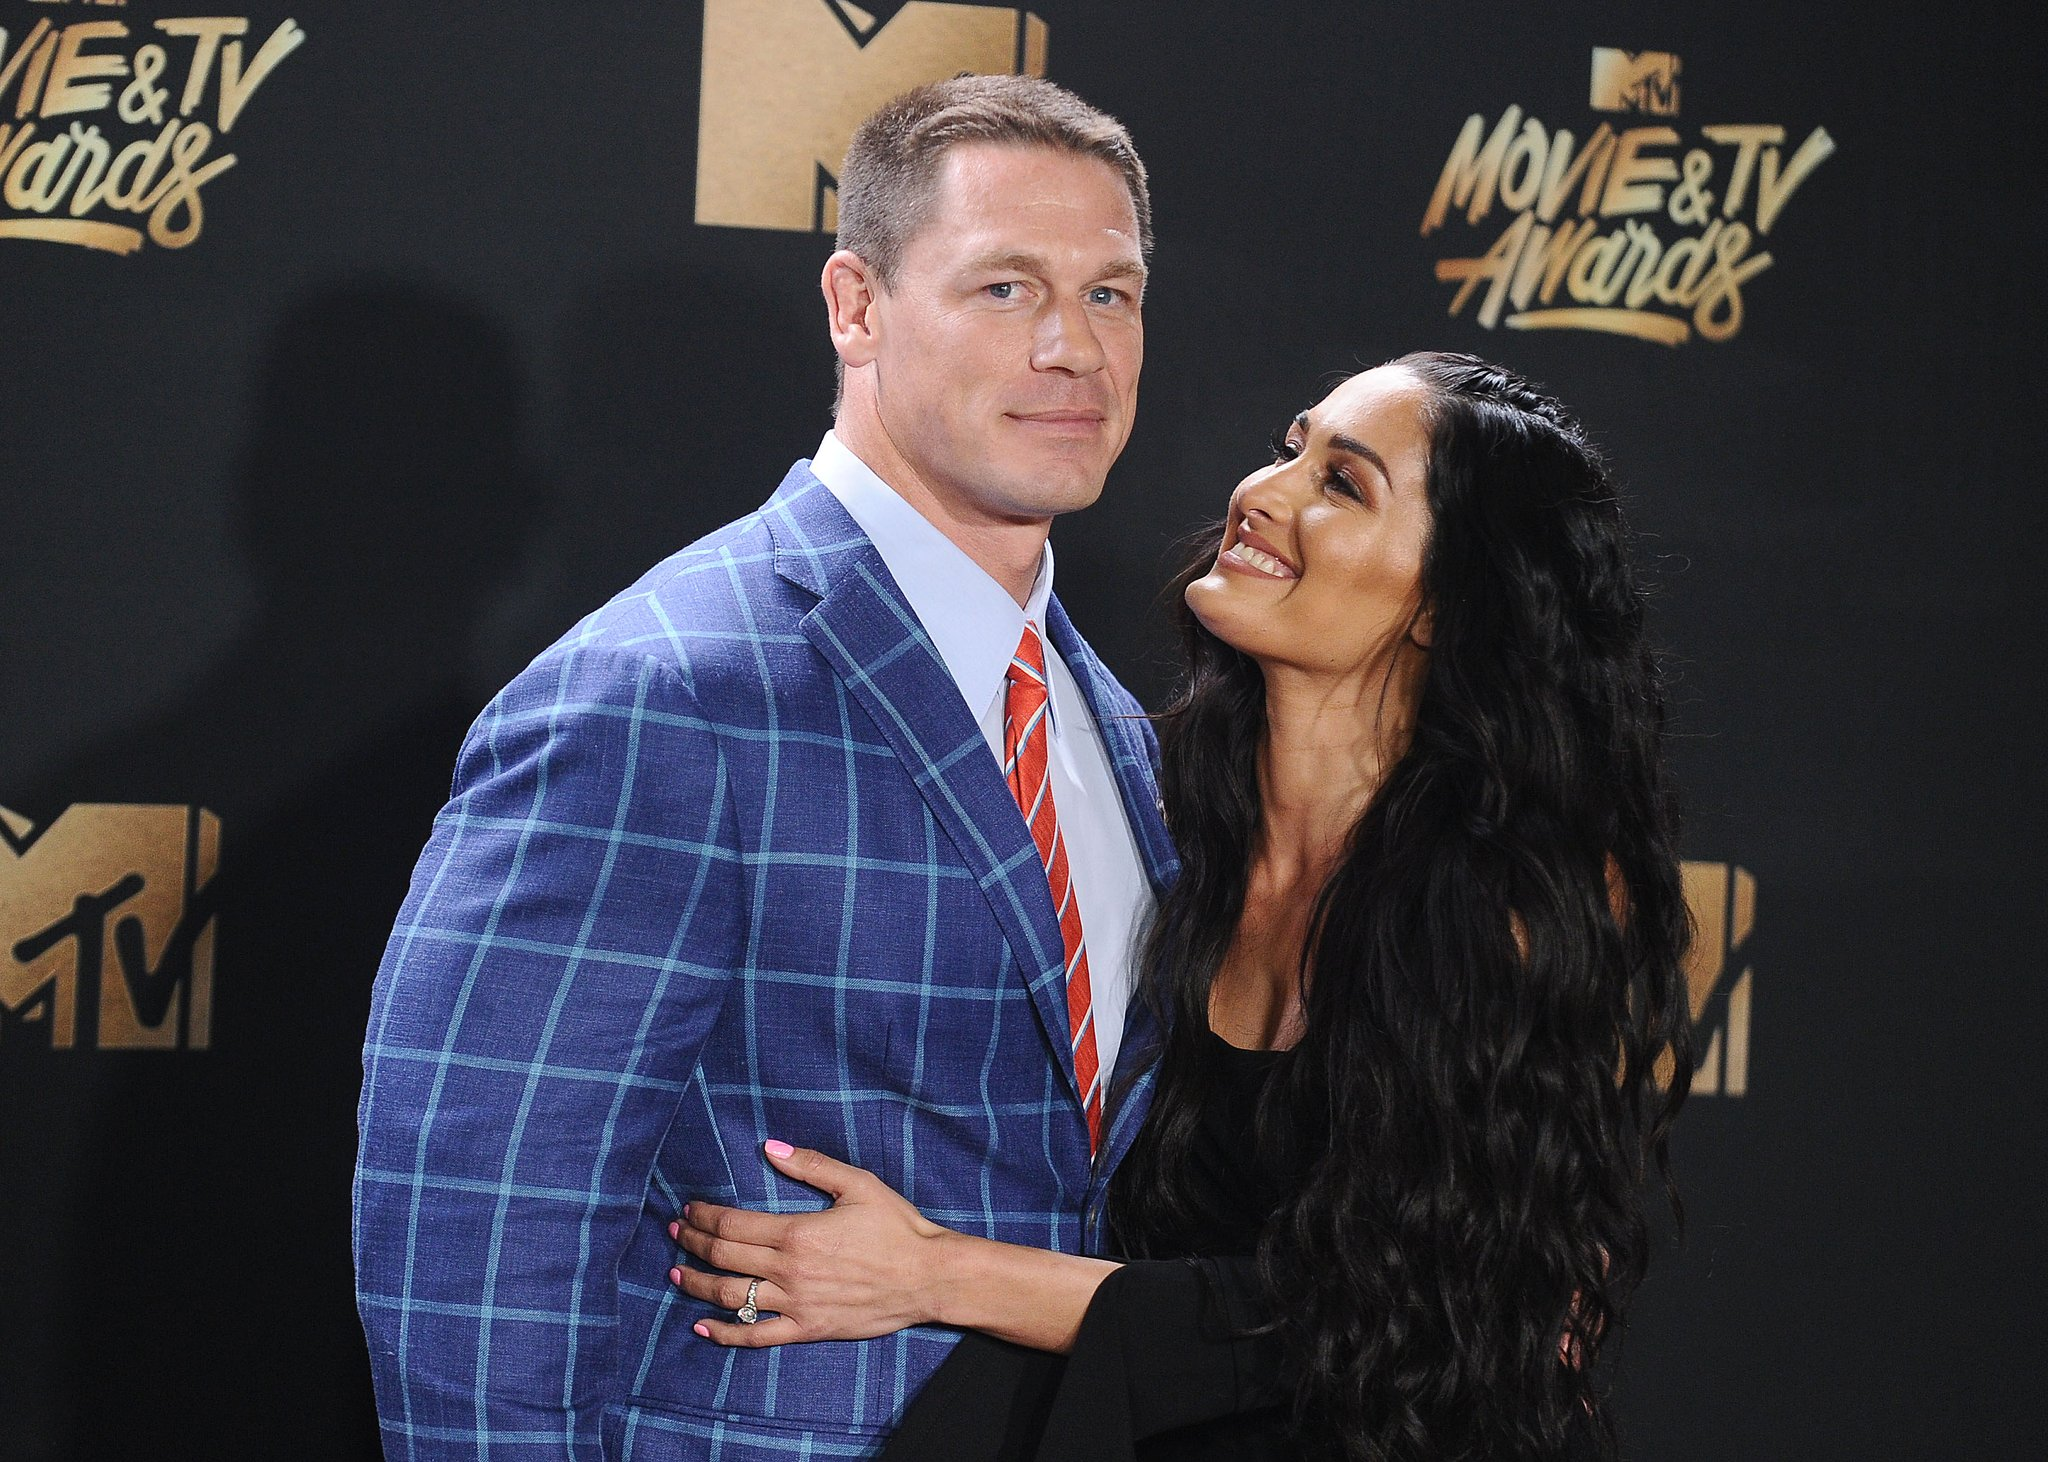 Love story how did nikki bella and john cena meet speeddating john cena recently popped the question to nikki bella in front of thousands of fans at wrestlemania 33 in april and while the proposal itself was super m4hsunfo